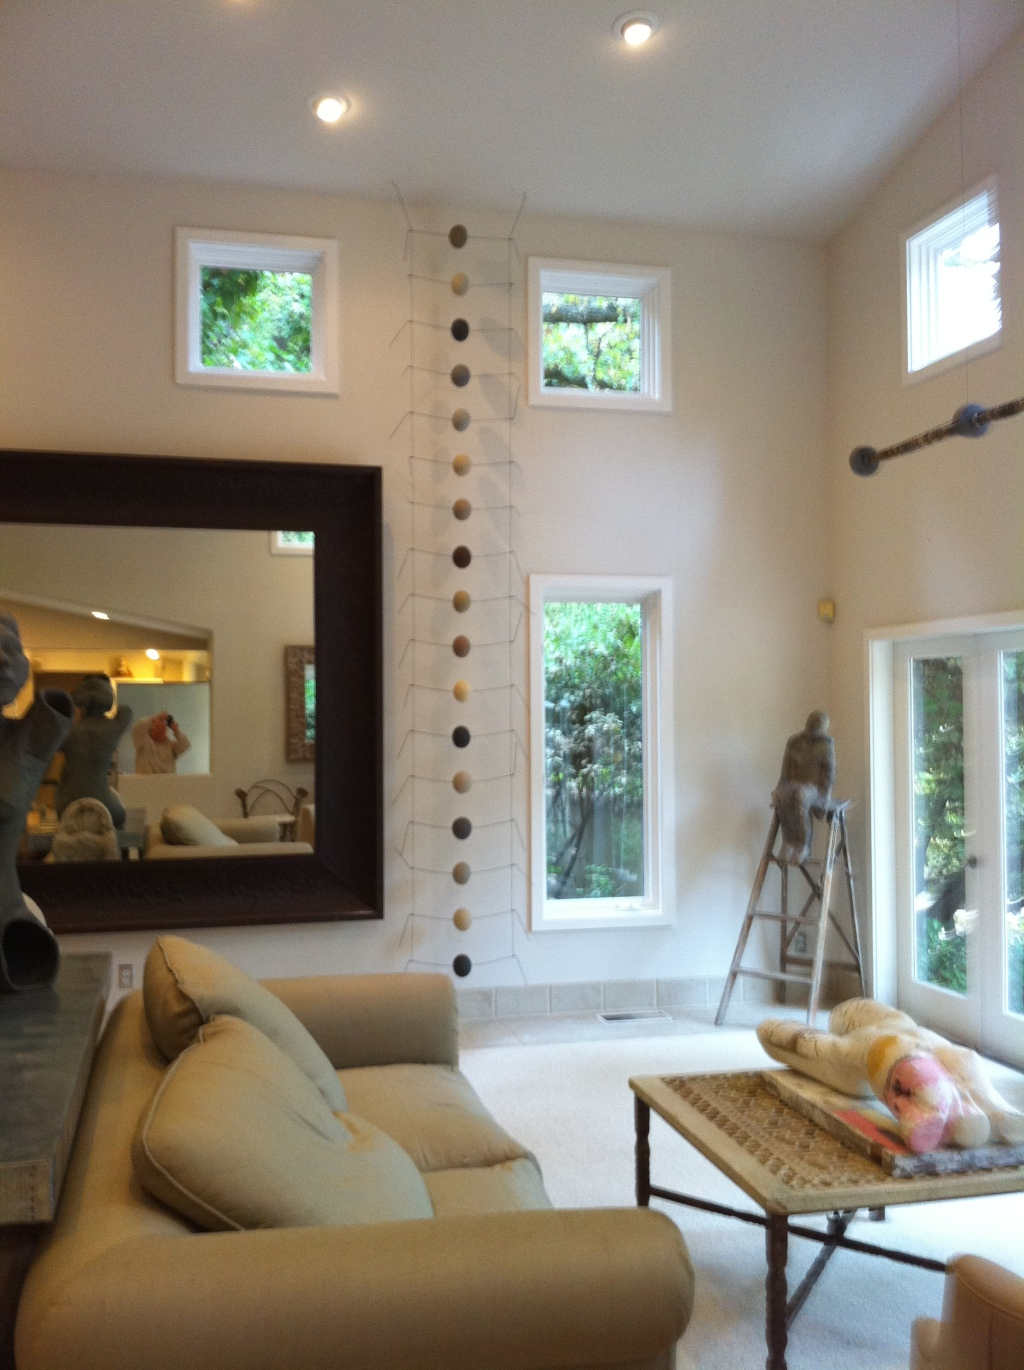 The long ladder-like item next between the mirror and the window.  It is ceramic balls on a wire frame.